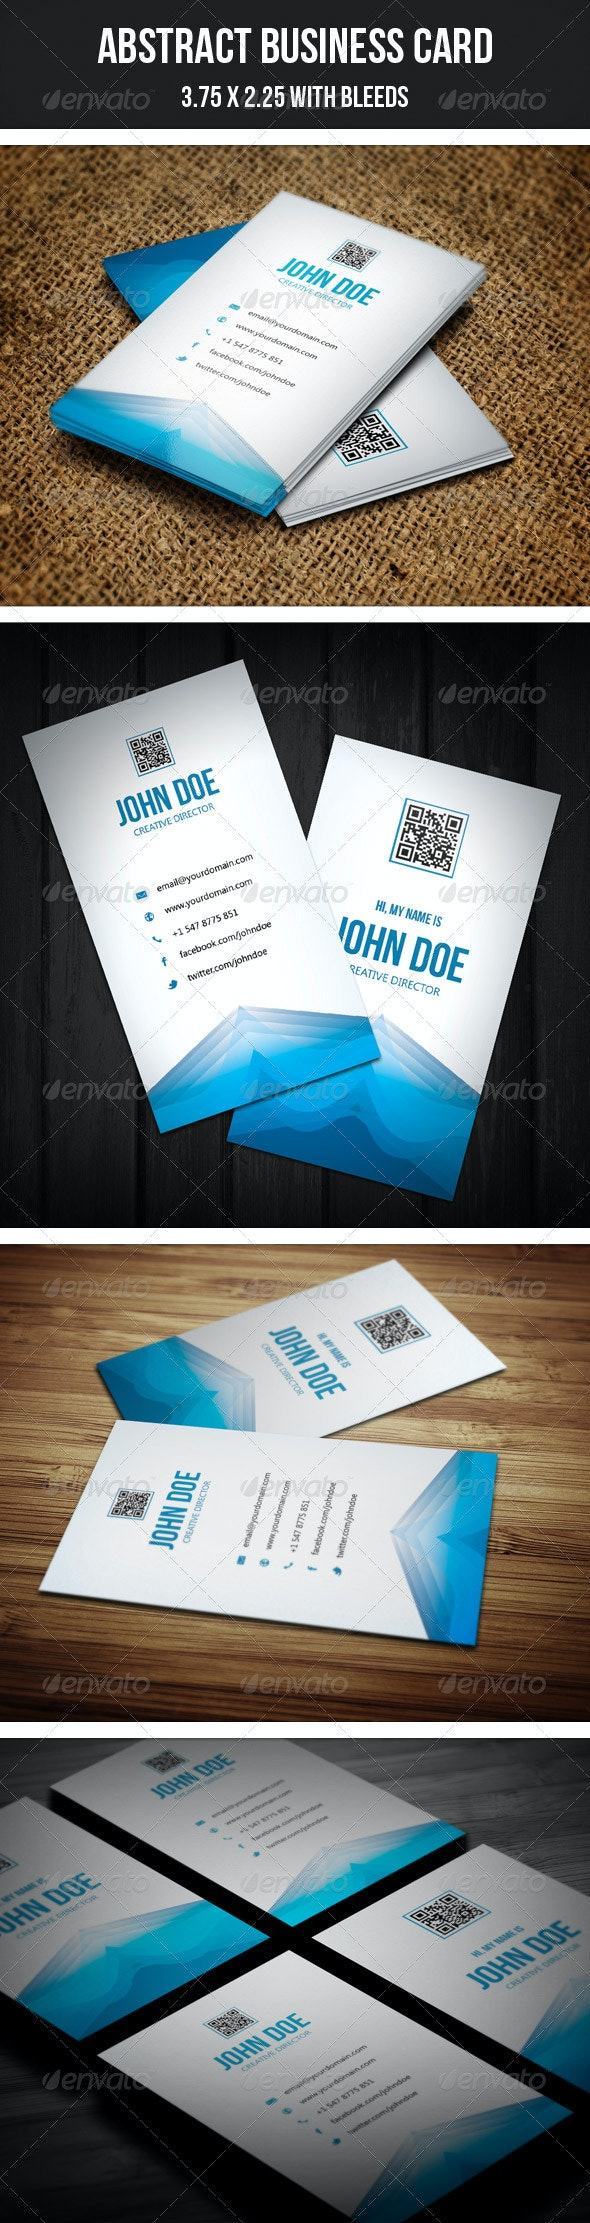 Abstact Creative Business Card - 28 - Creative Business Cards